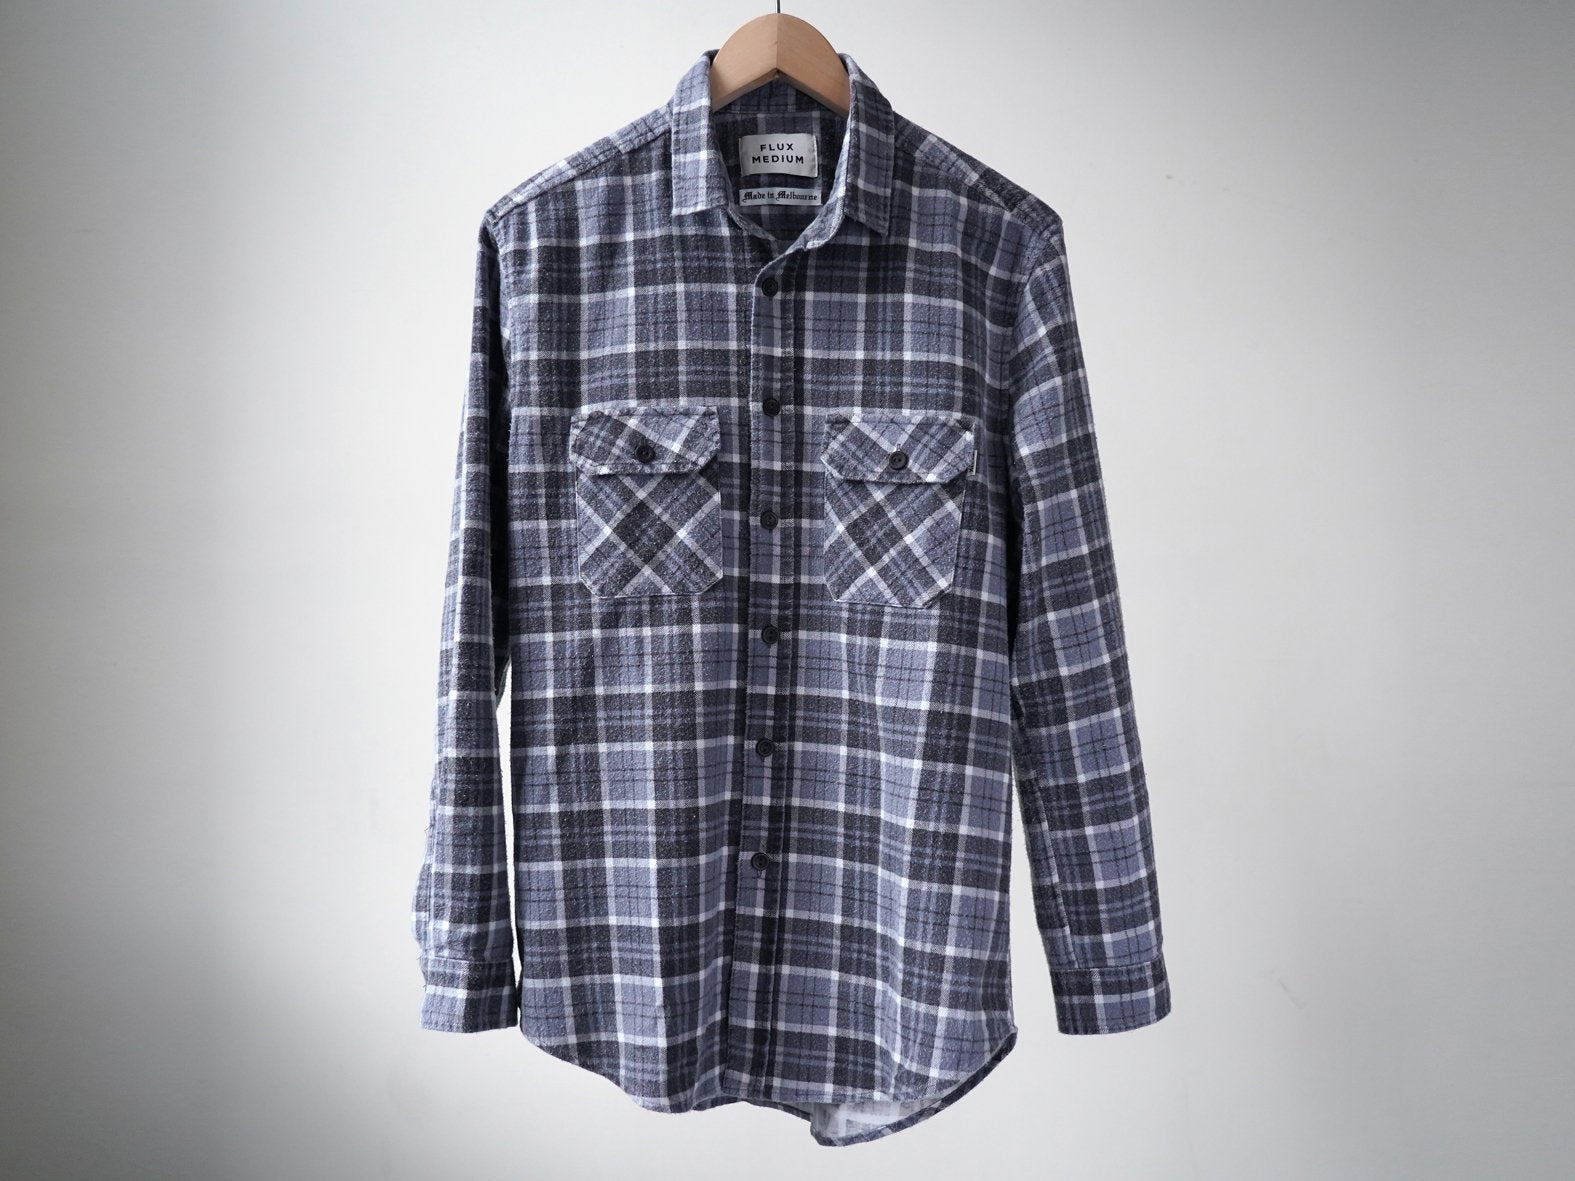 TURNER FLANNY. GREY CHECK